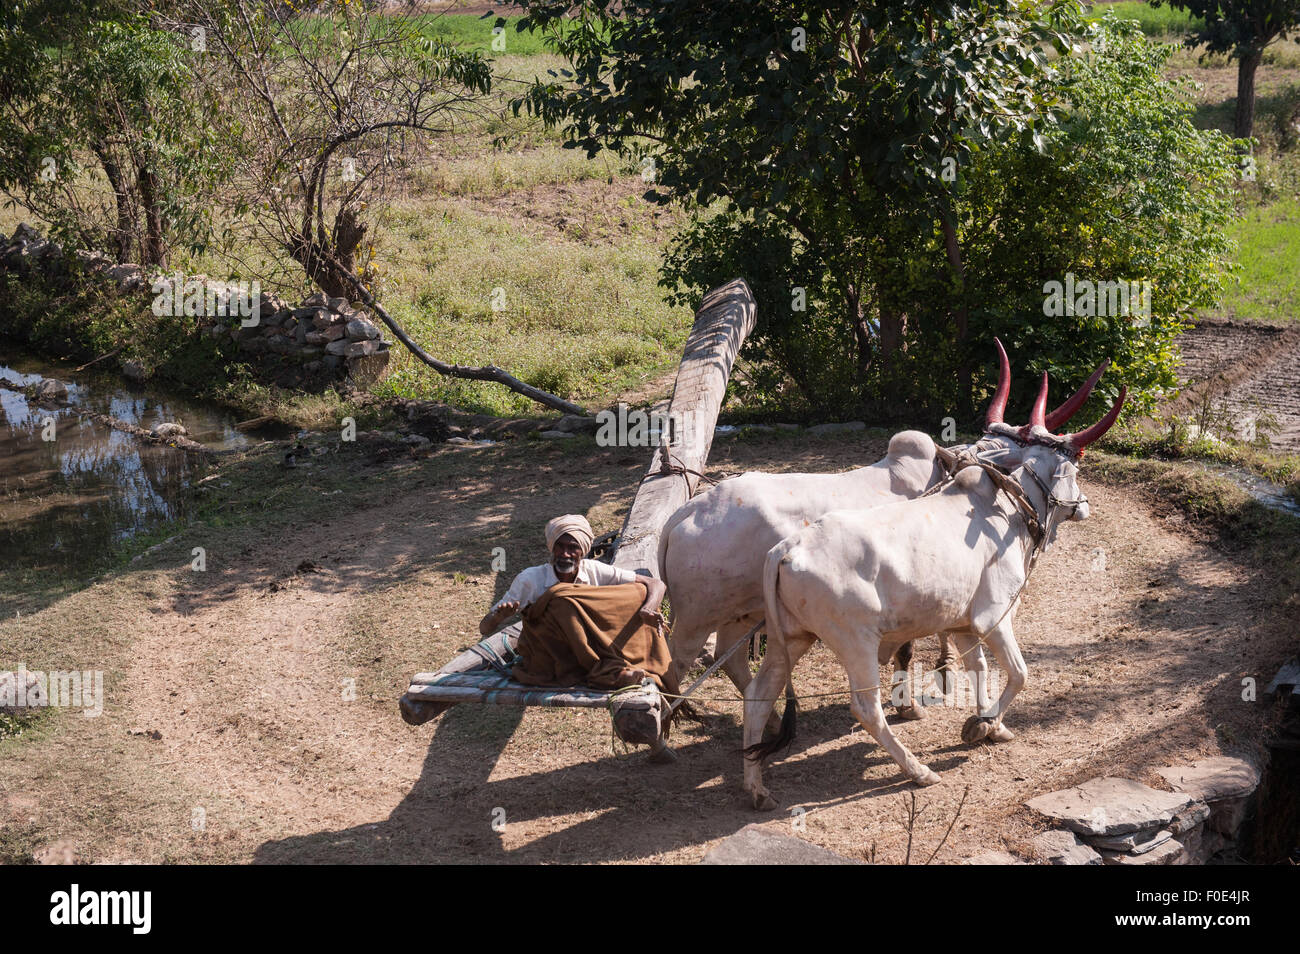 India; road from Udaipur to Jodhpur. Old man driving a pair of oxen to power a water wheel for irrigating the fields. - Stock Image